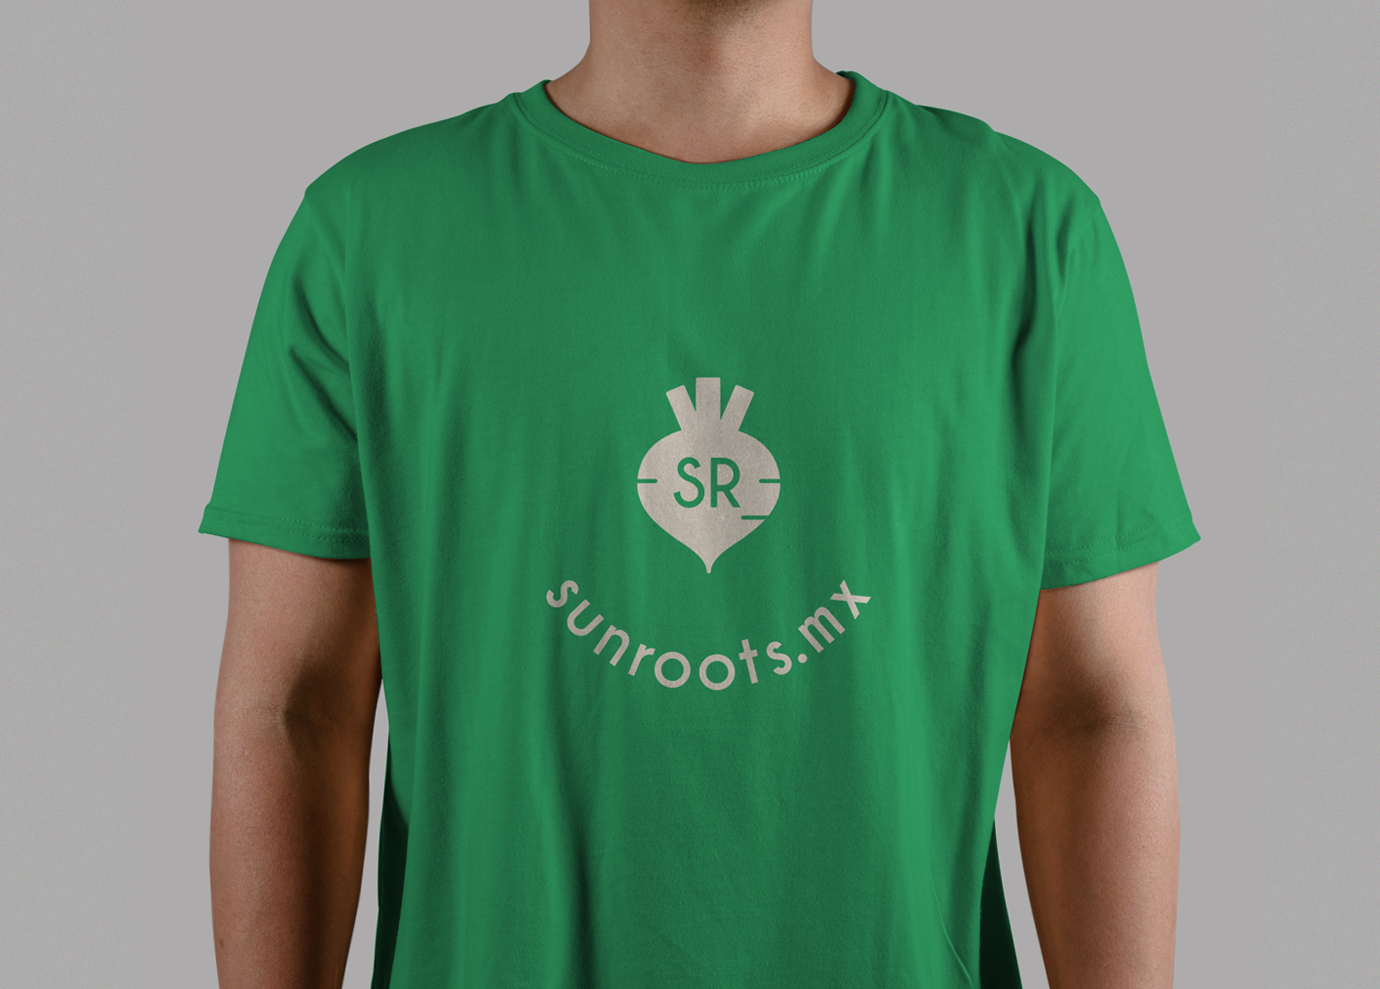 T-shirt-sunroots-yoenpaperland